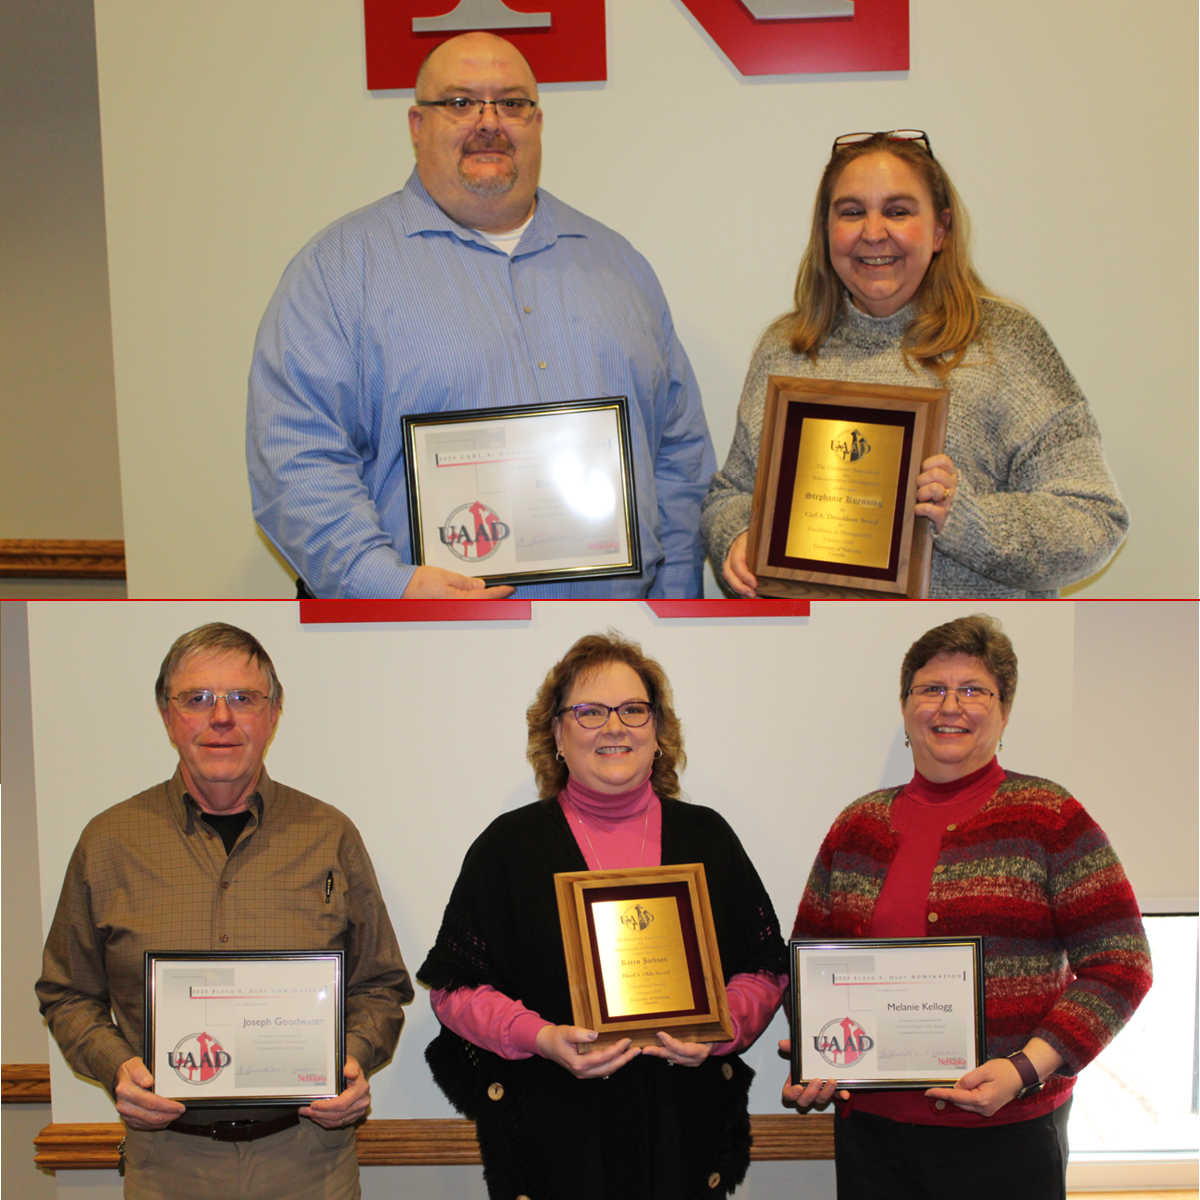 Top row: 2020 Carl A. Donaldson Award for Excellence in Management Nominees: Blake France and Stephanie Kuenning. Not pictured: Carrie Jackson. Bottom row: 2020 Floyd S. Oldt Award for Exceptional Service and Dedication Nominees: Joe Goodwater, Karen Jack